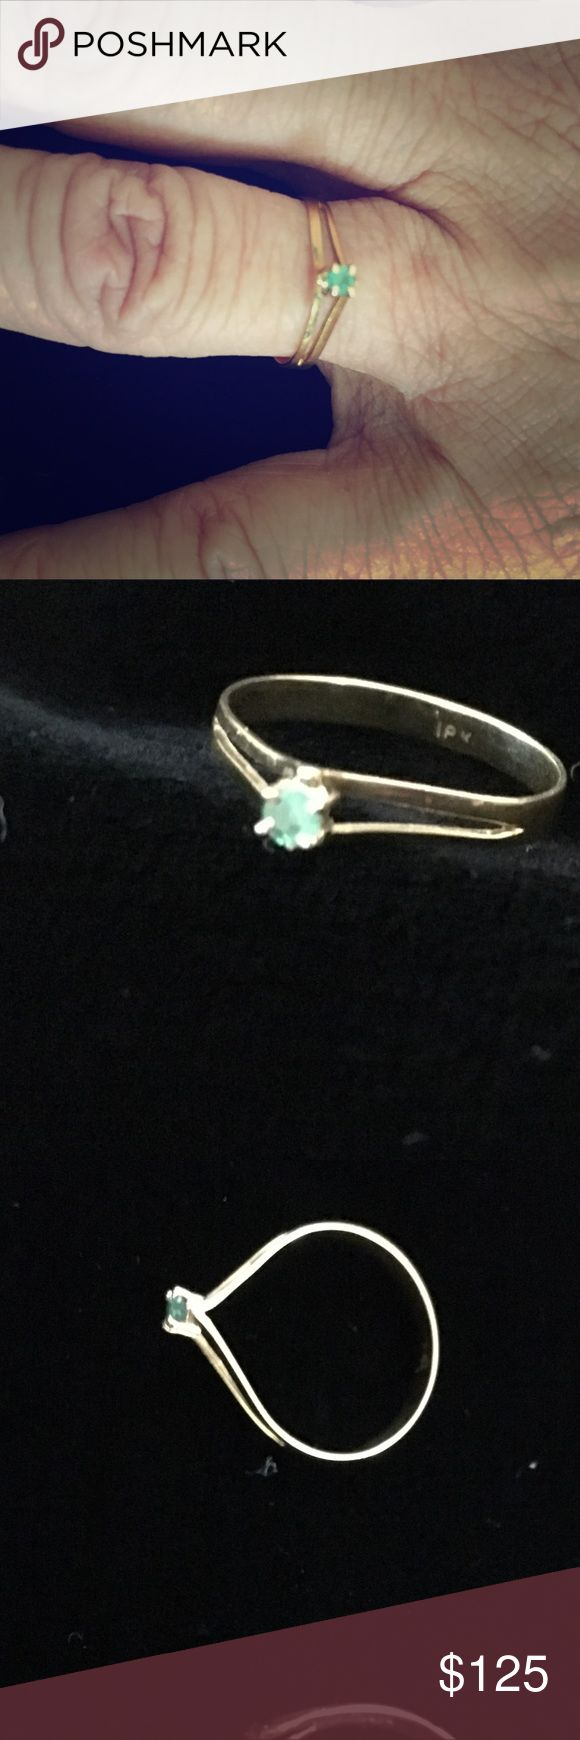 VTG 18kt Gold Natural Emerald Ring Vintage Colombian 18kt Yellow Gold Natural Emerald Ring in size 5.  🎀Price is firm.🎀 Jewelry Rings